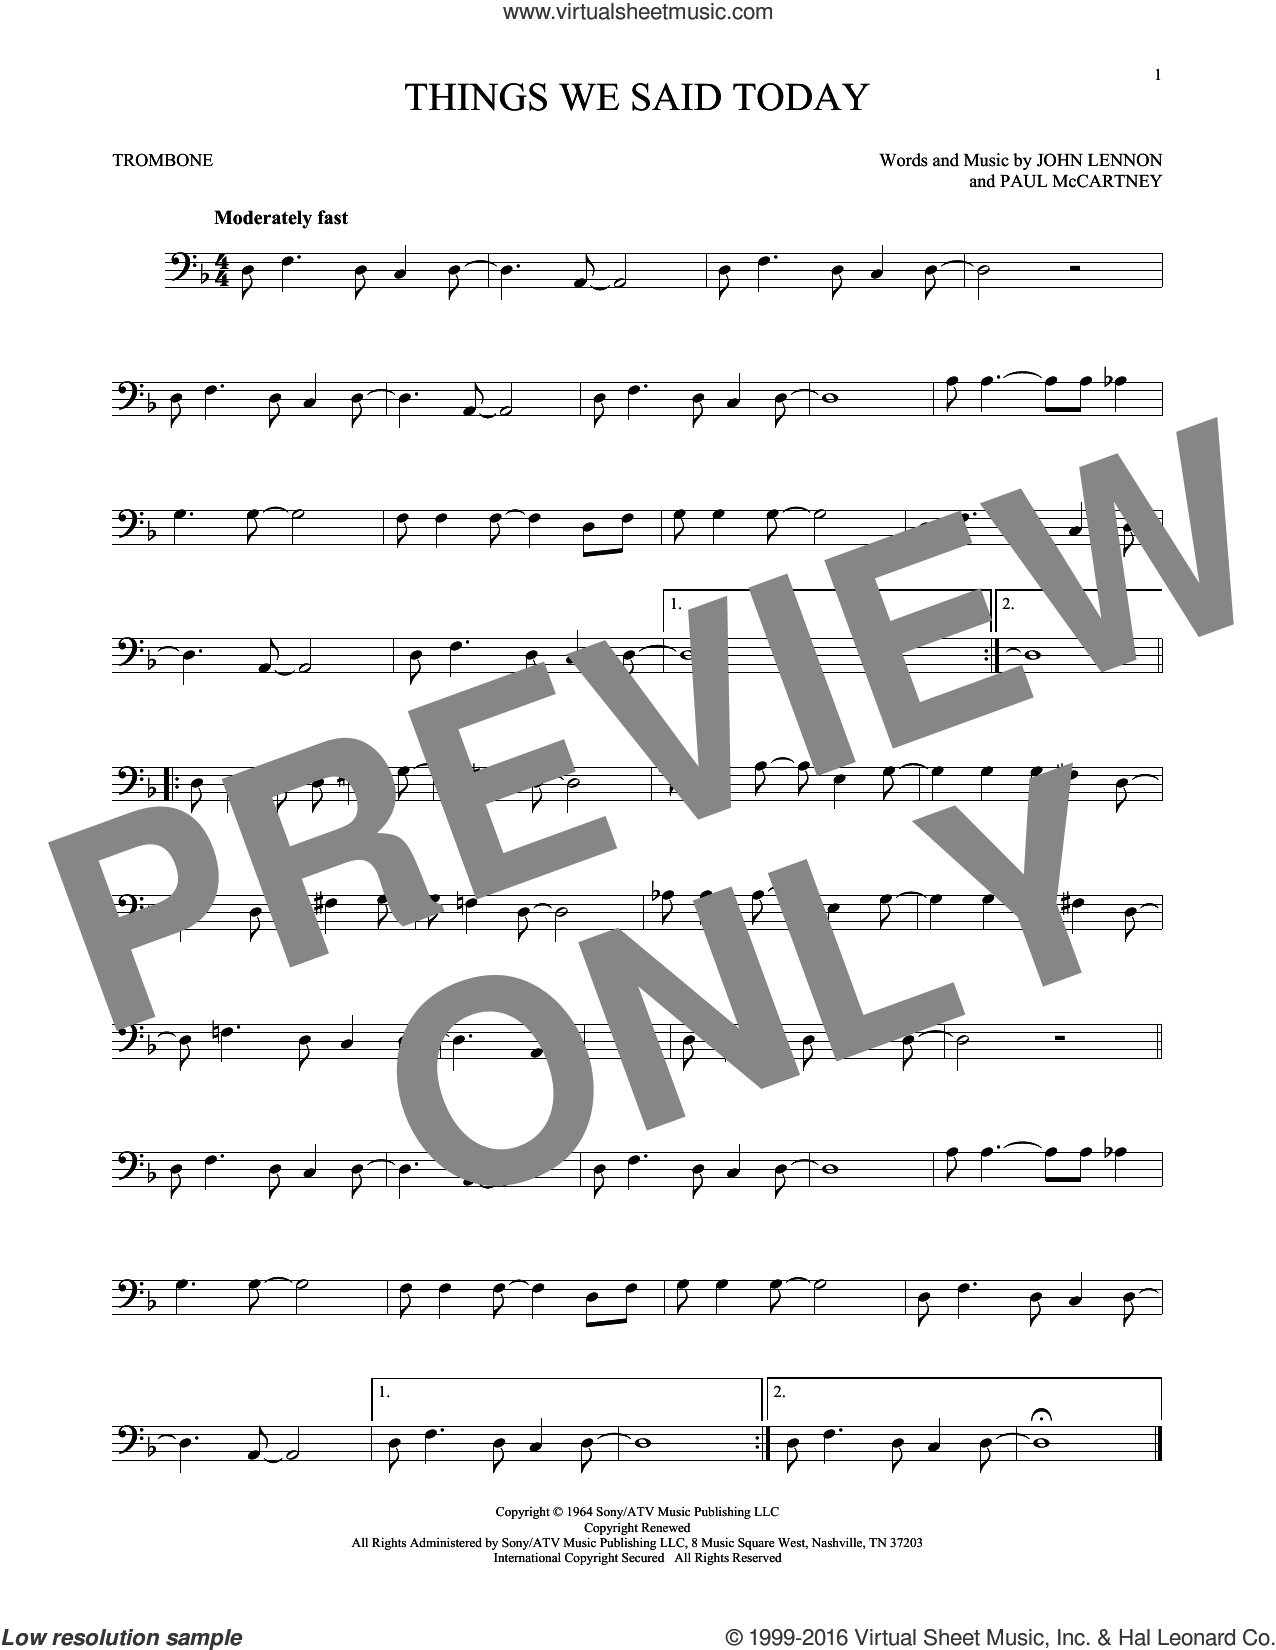 Things We Said Today sheet music for trombone solo by The Beatles, John Lennon and Paul McCartney, intermediate trombone. Score Image Preview.